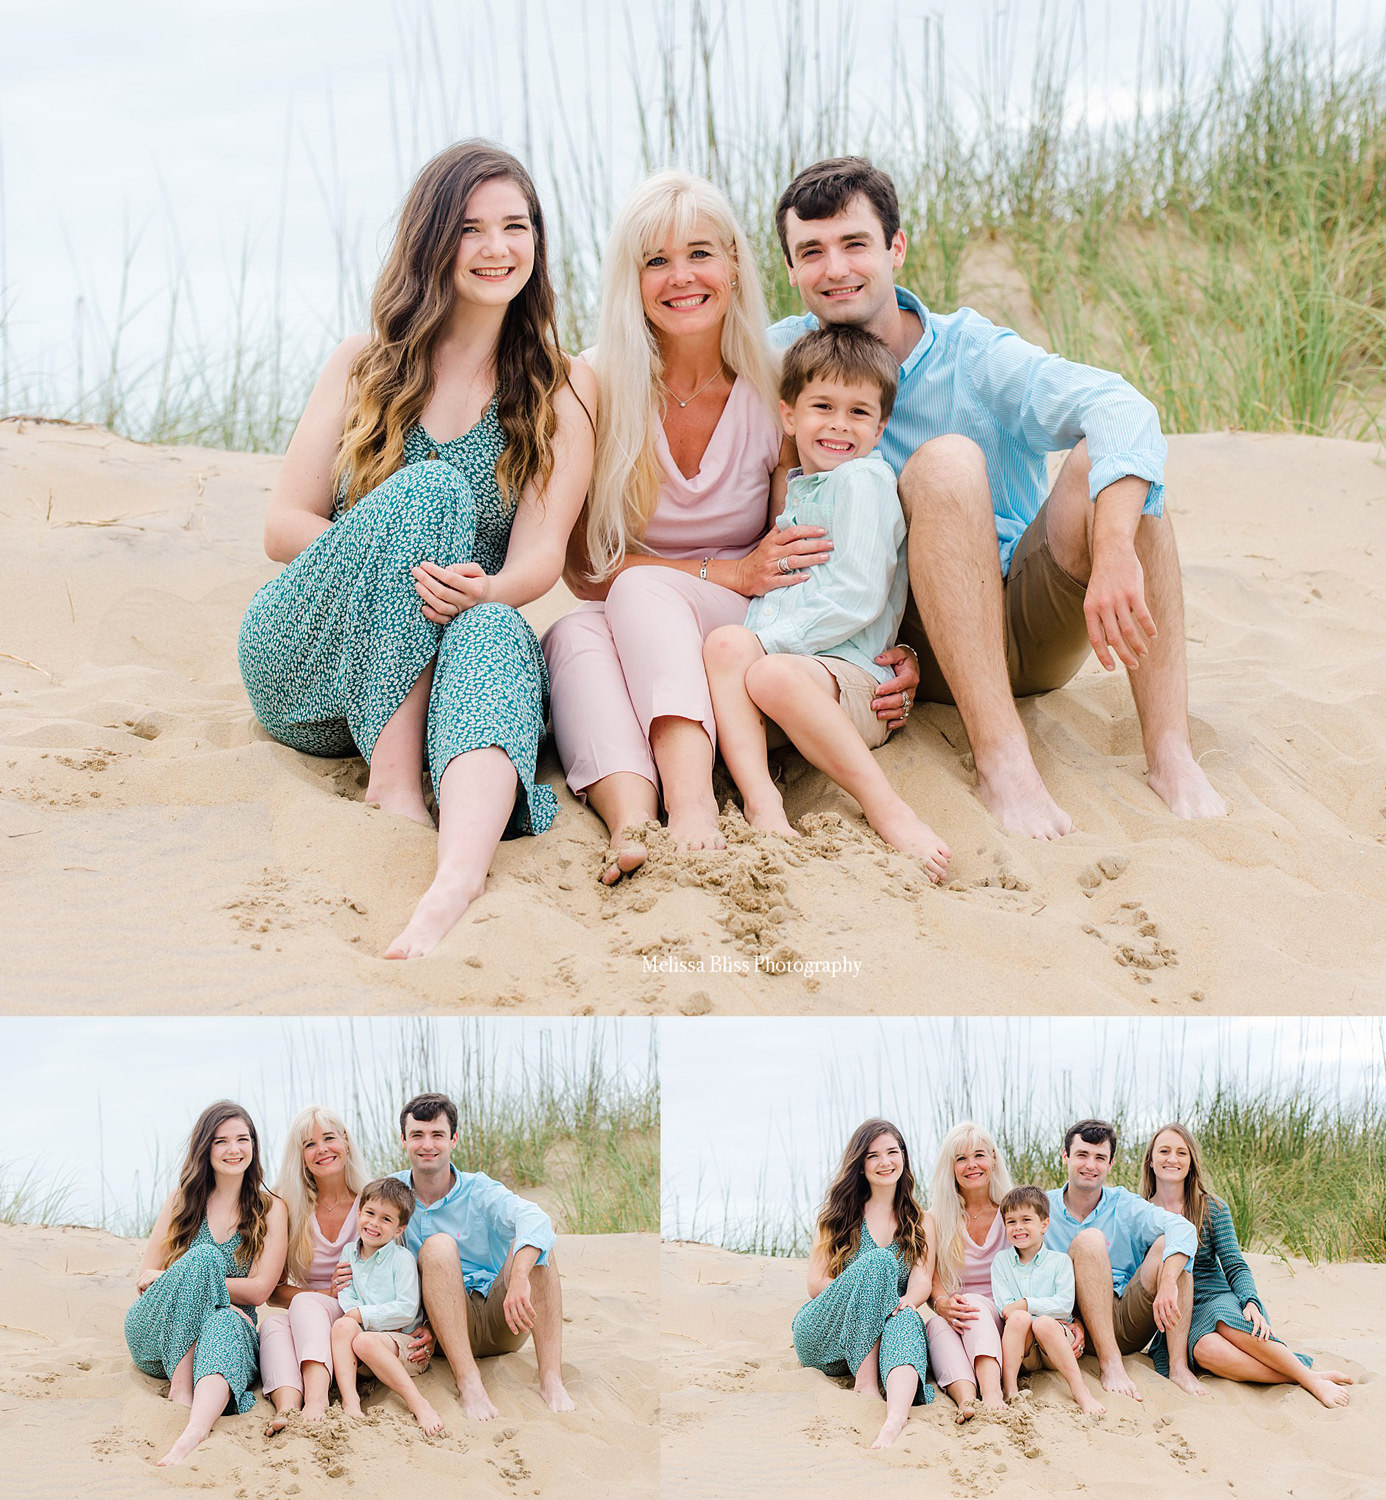 virginia-beach-photographer-captures-lifestyle-family-moments-melissa-bliss-photography.jpg